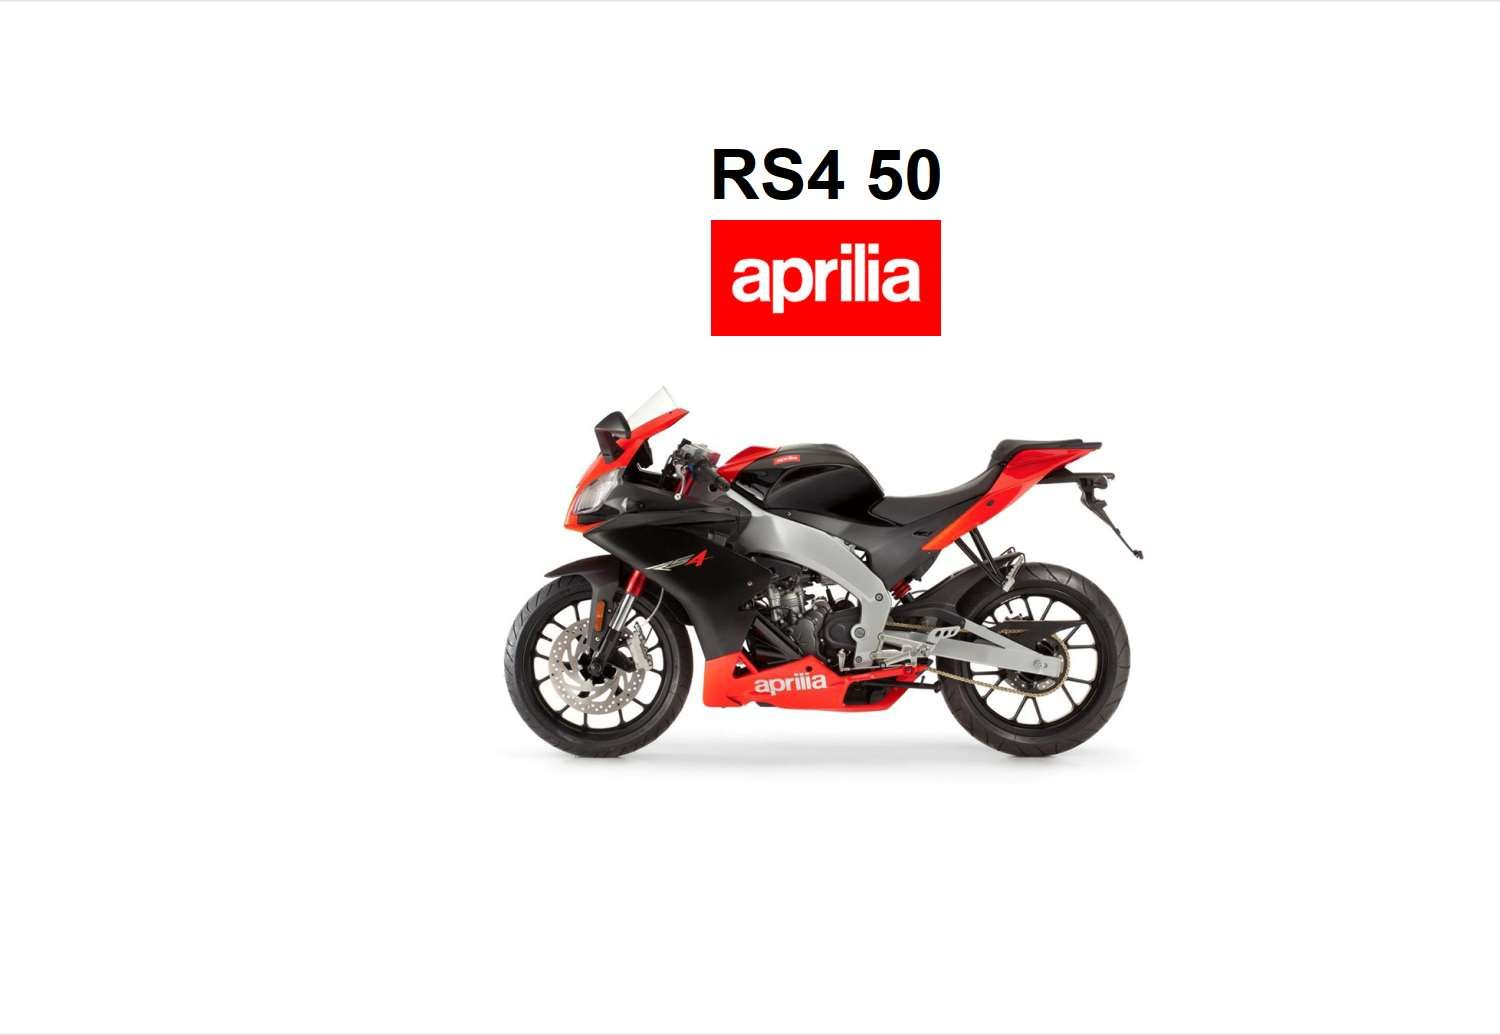 Aprilia RS4 50 2011 Owner's Manual has been published on